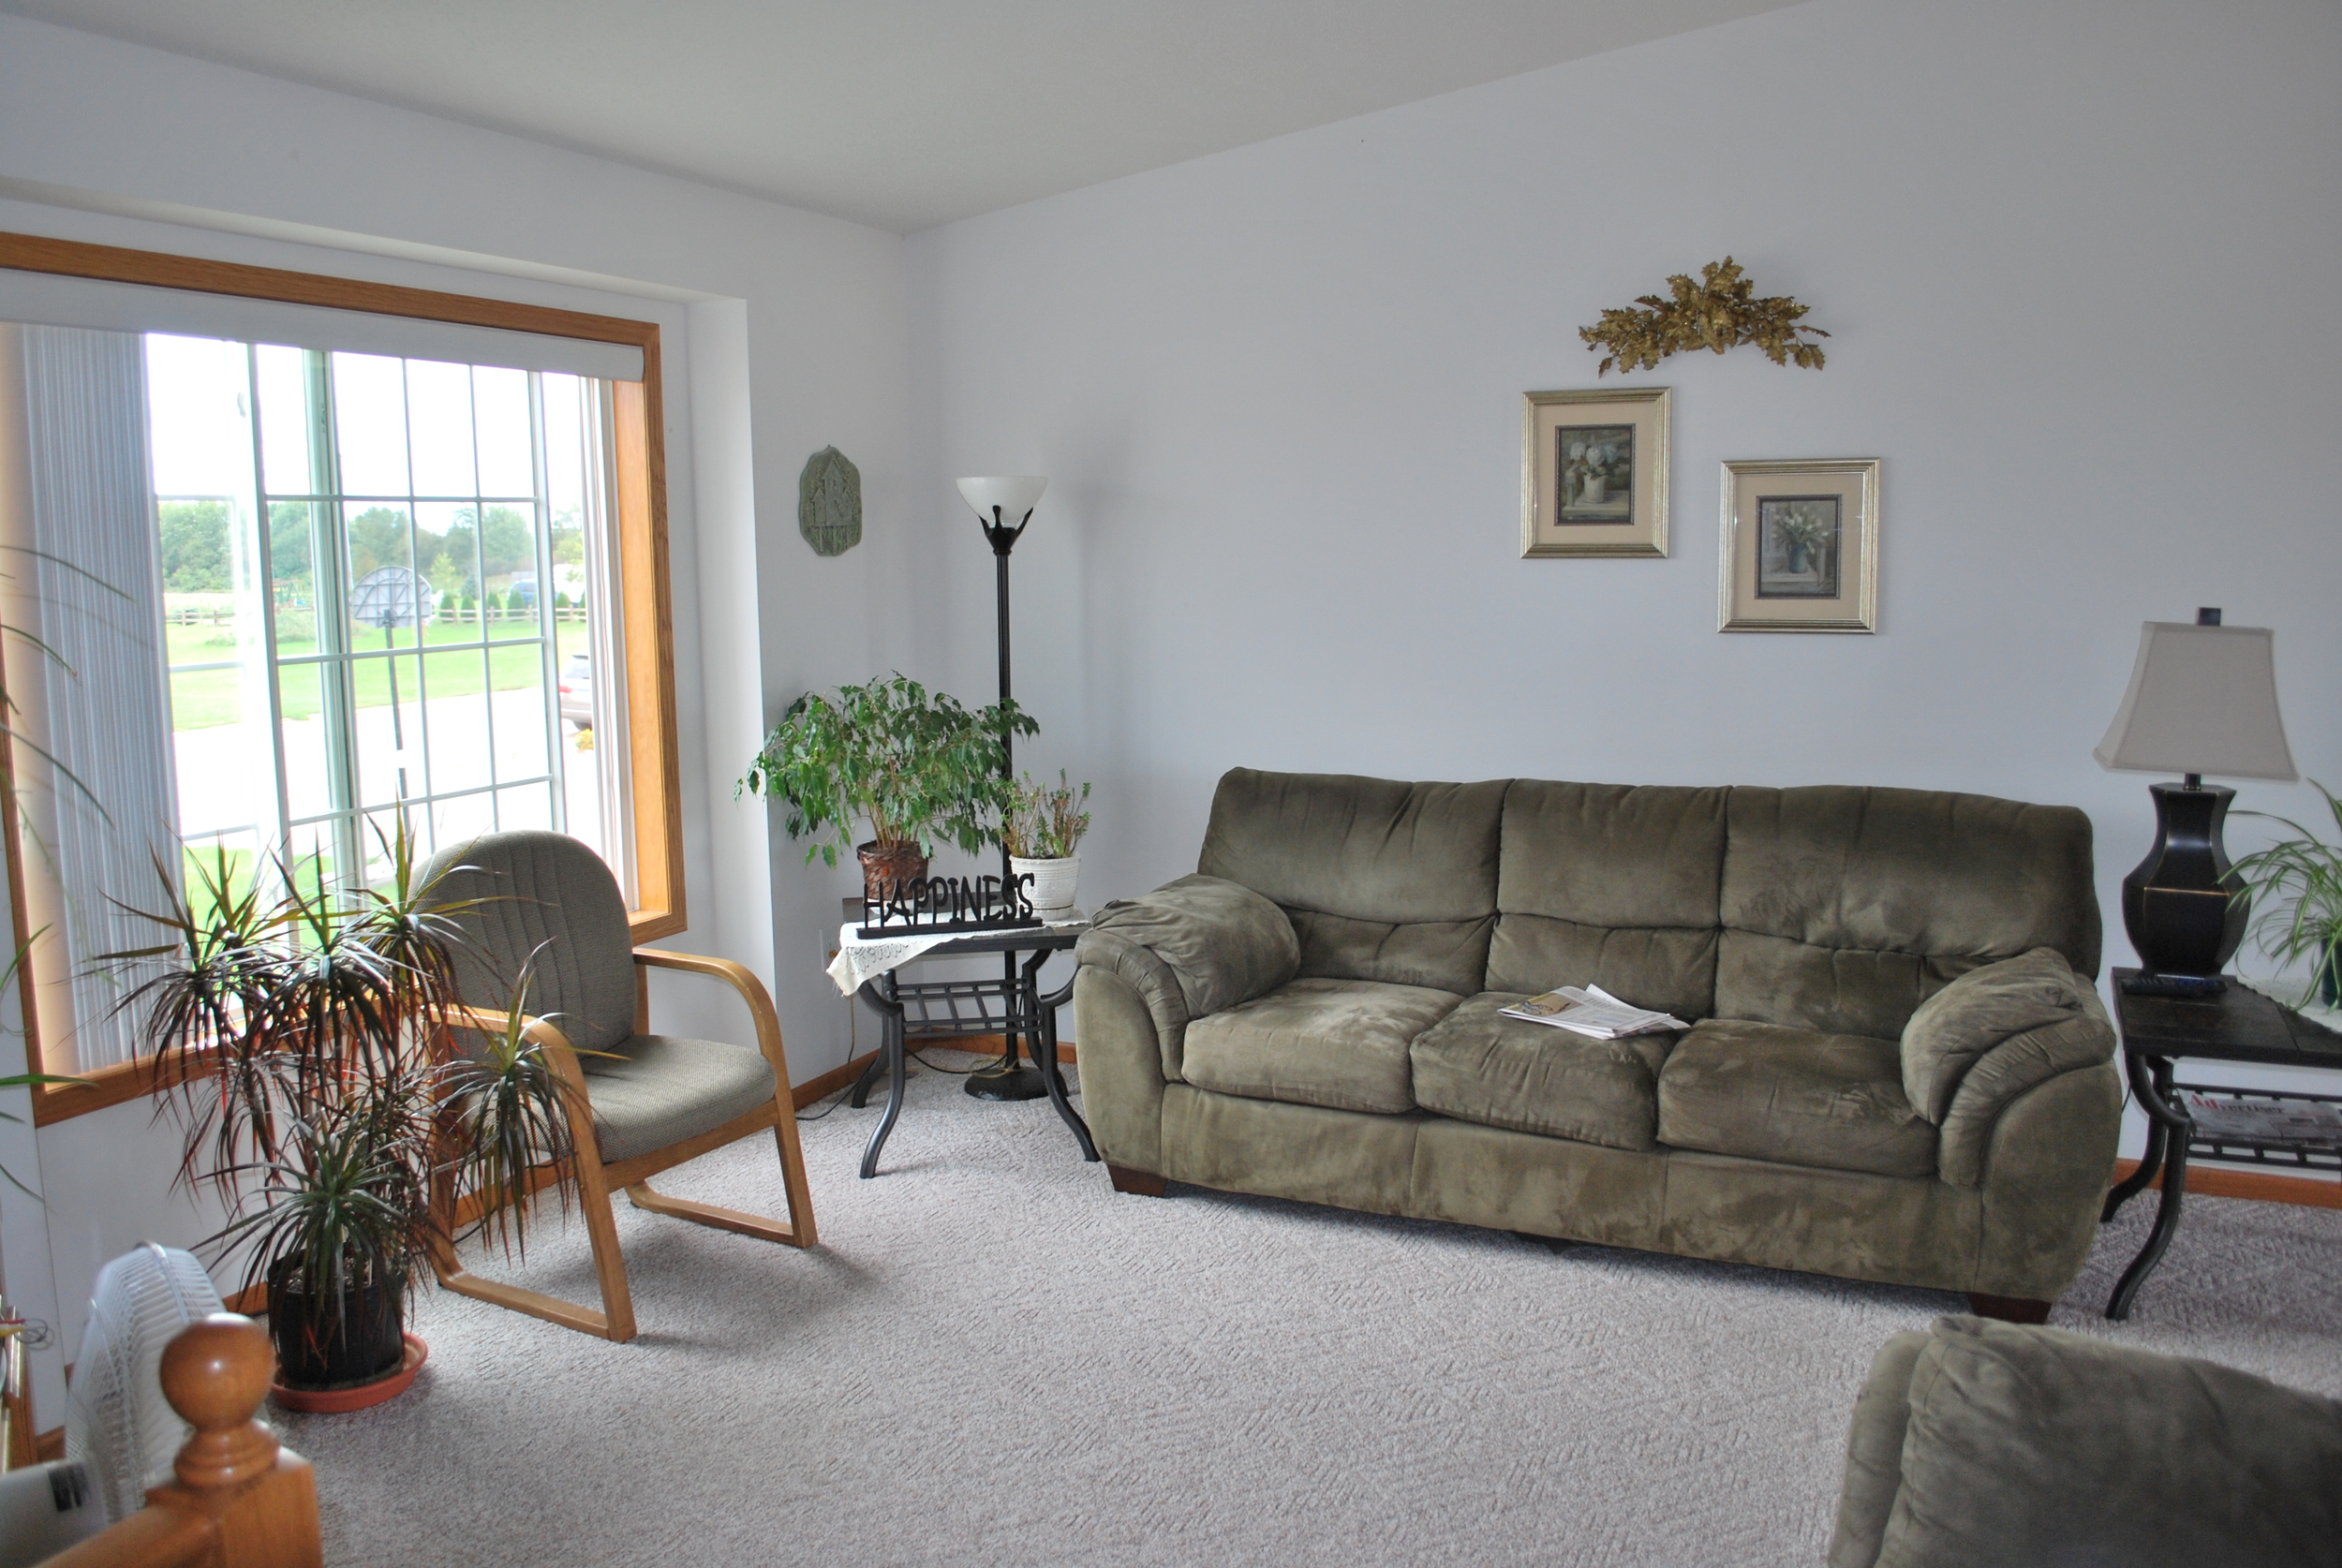 Living / Family Room - Jan's Place (AFC)